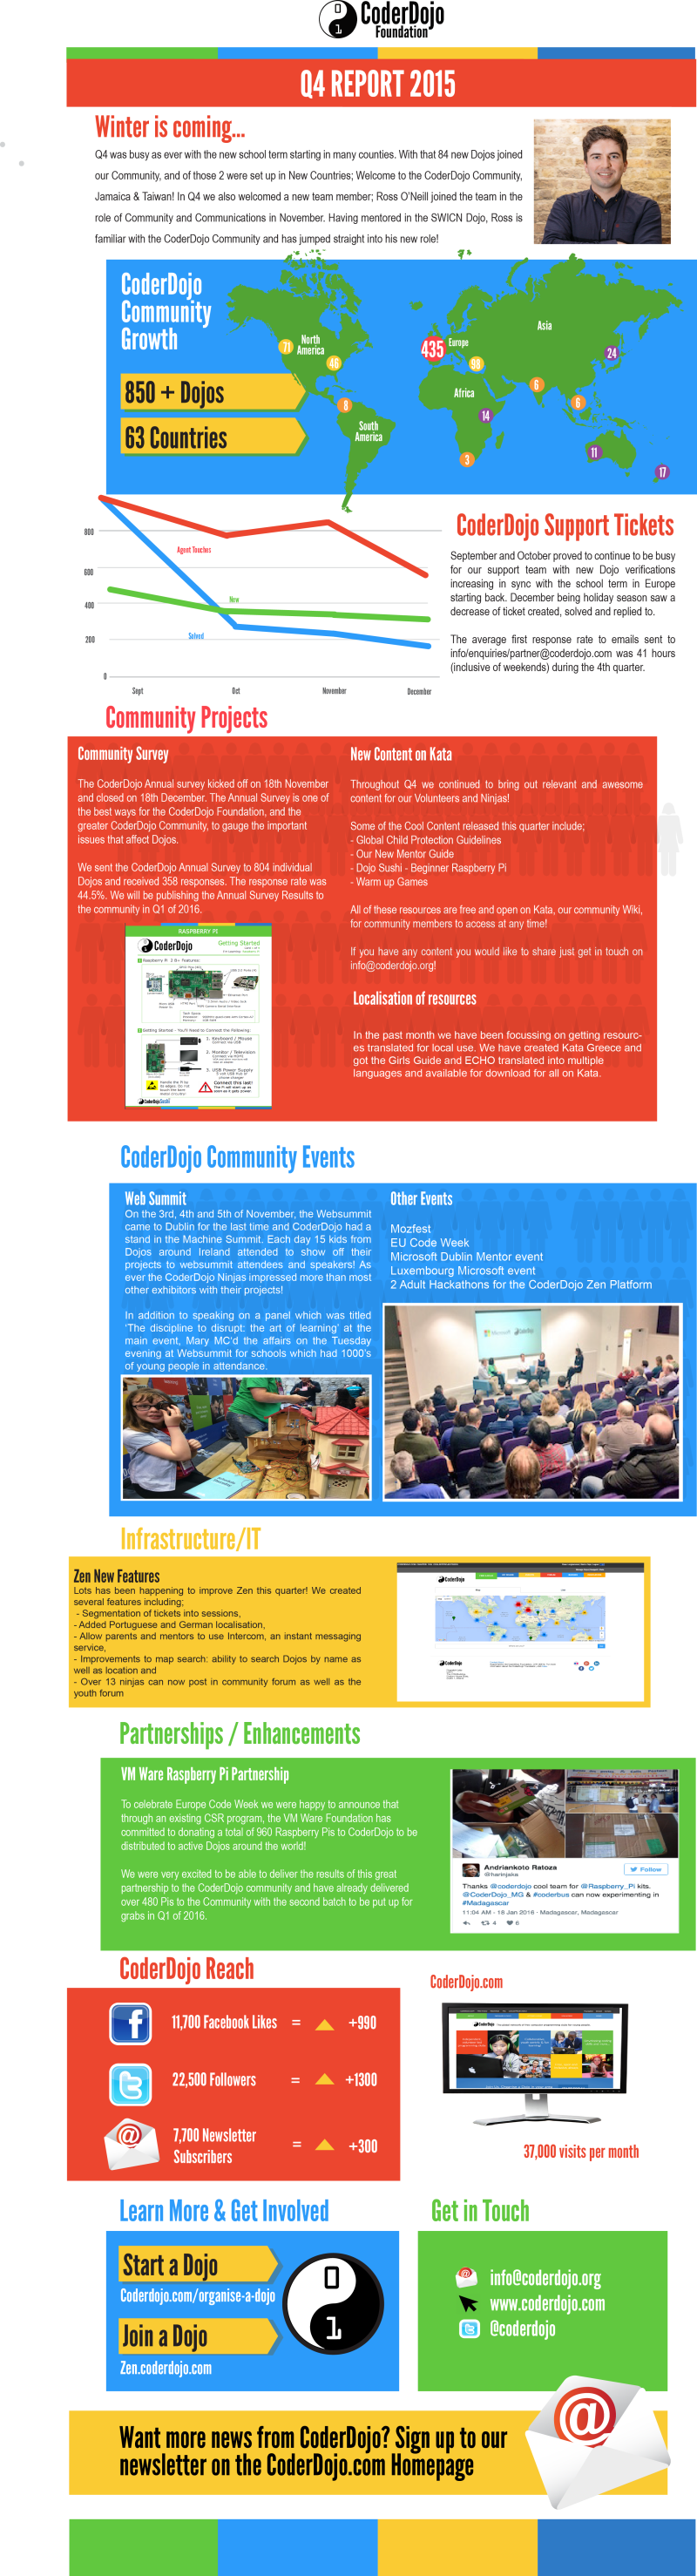 CoderDojo Q42015 Report